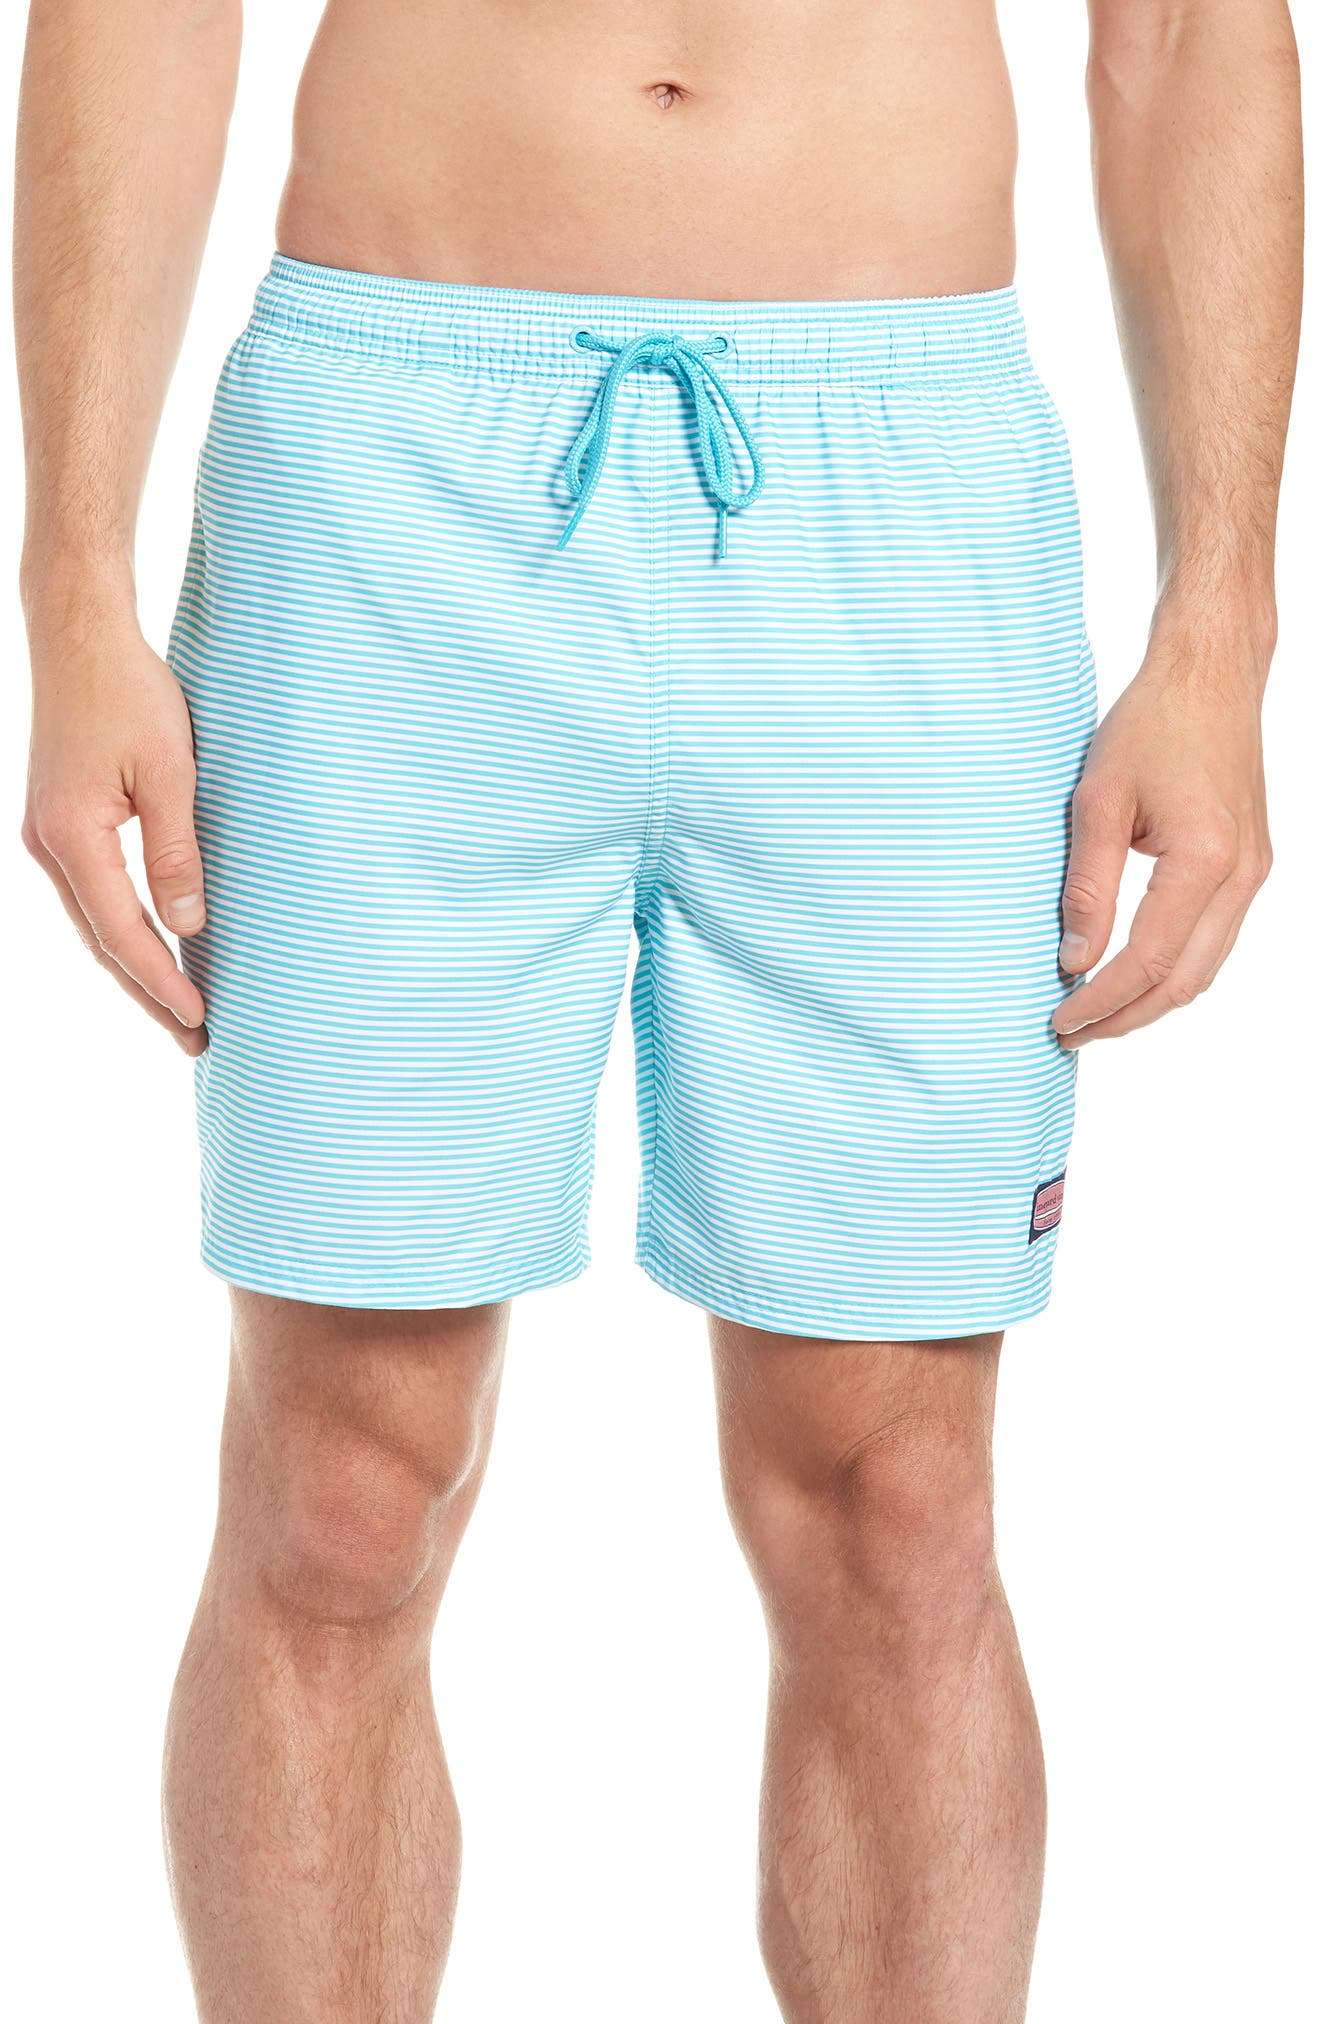 Chappy Stripe Swim Trunks,                         Main,                         color, Turquoise